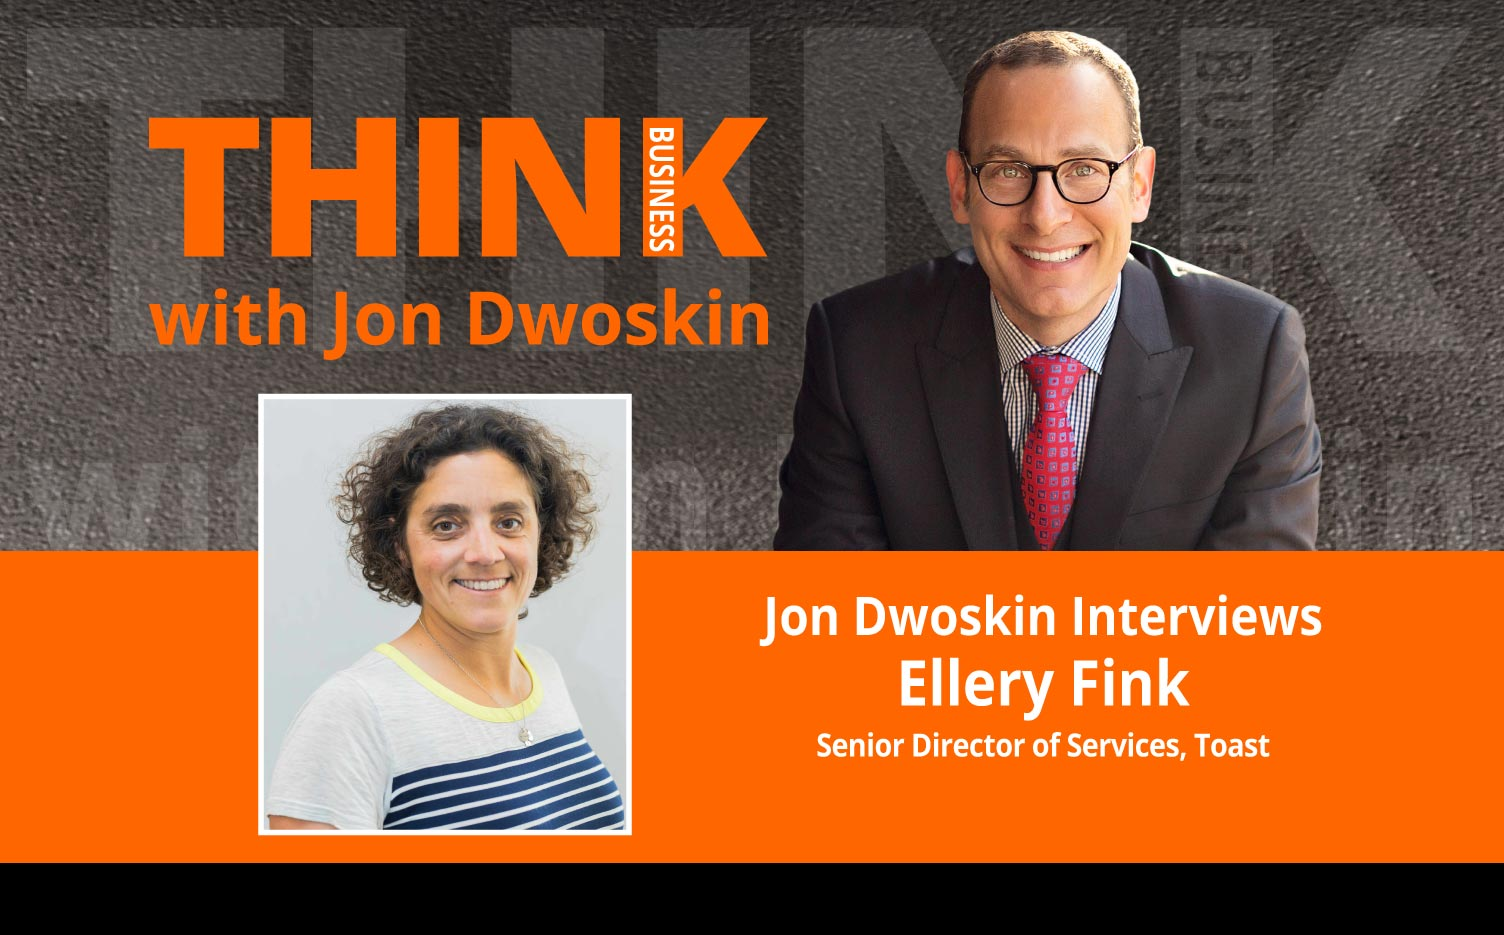 THINK Business Podcast: Jon Dwoskin Interviews Ellery Fink, Senior Director of Services, Toast